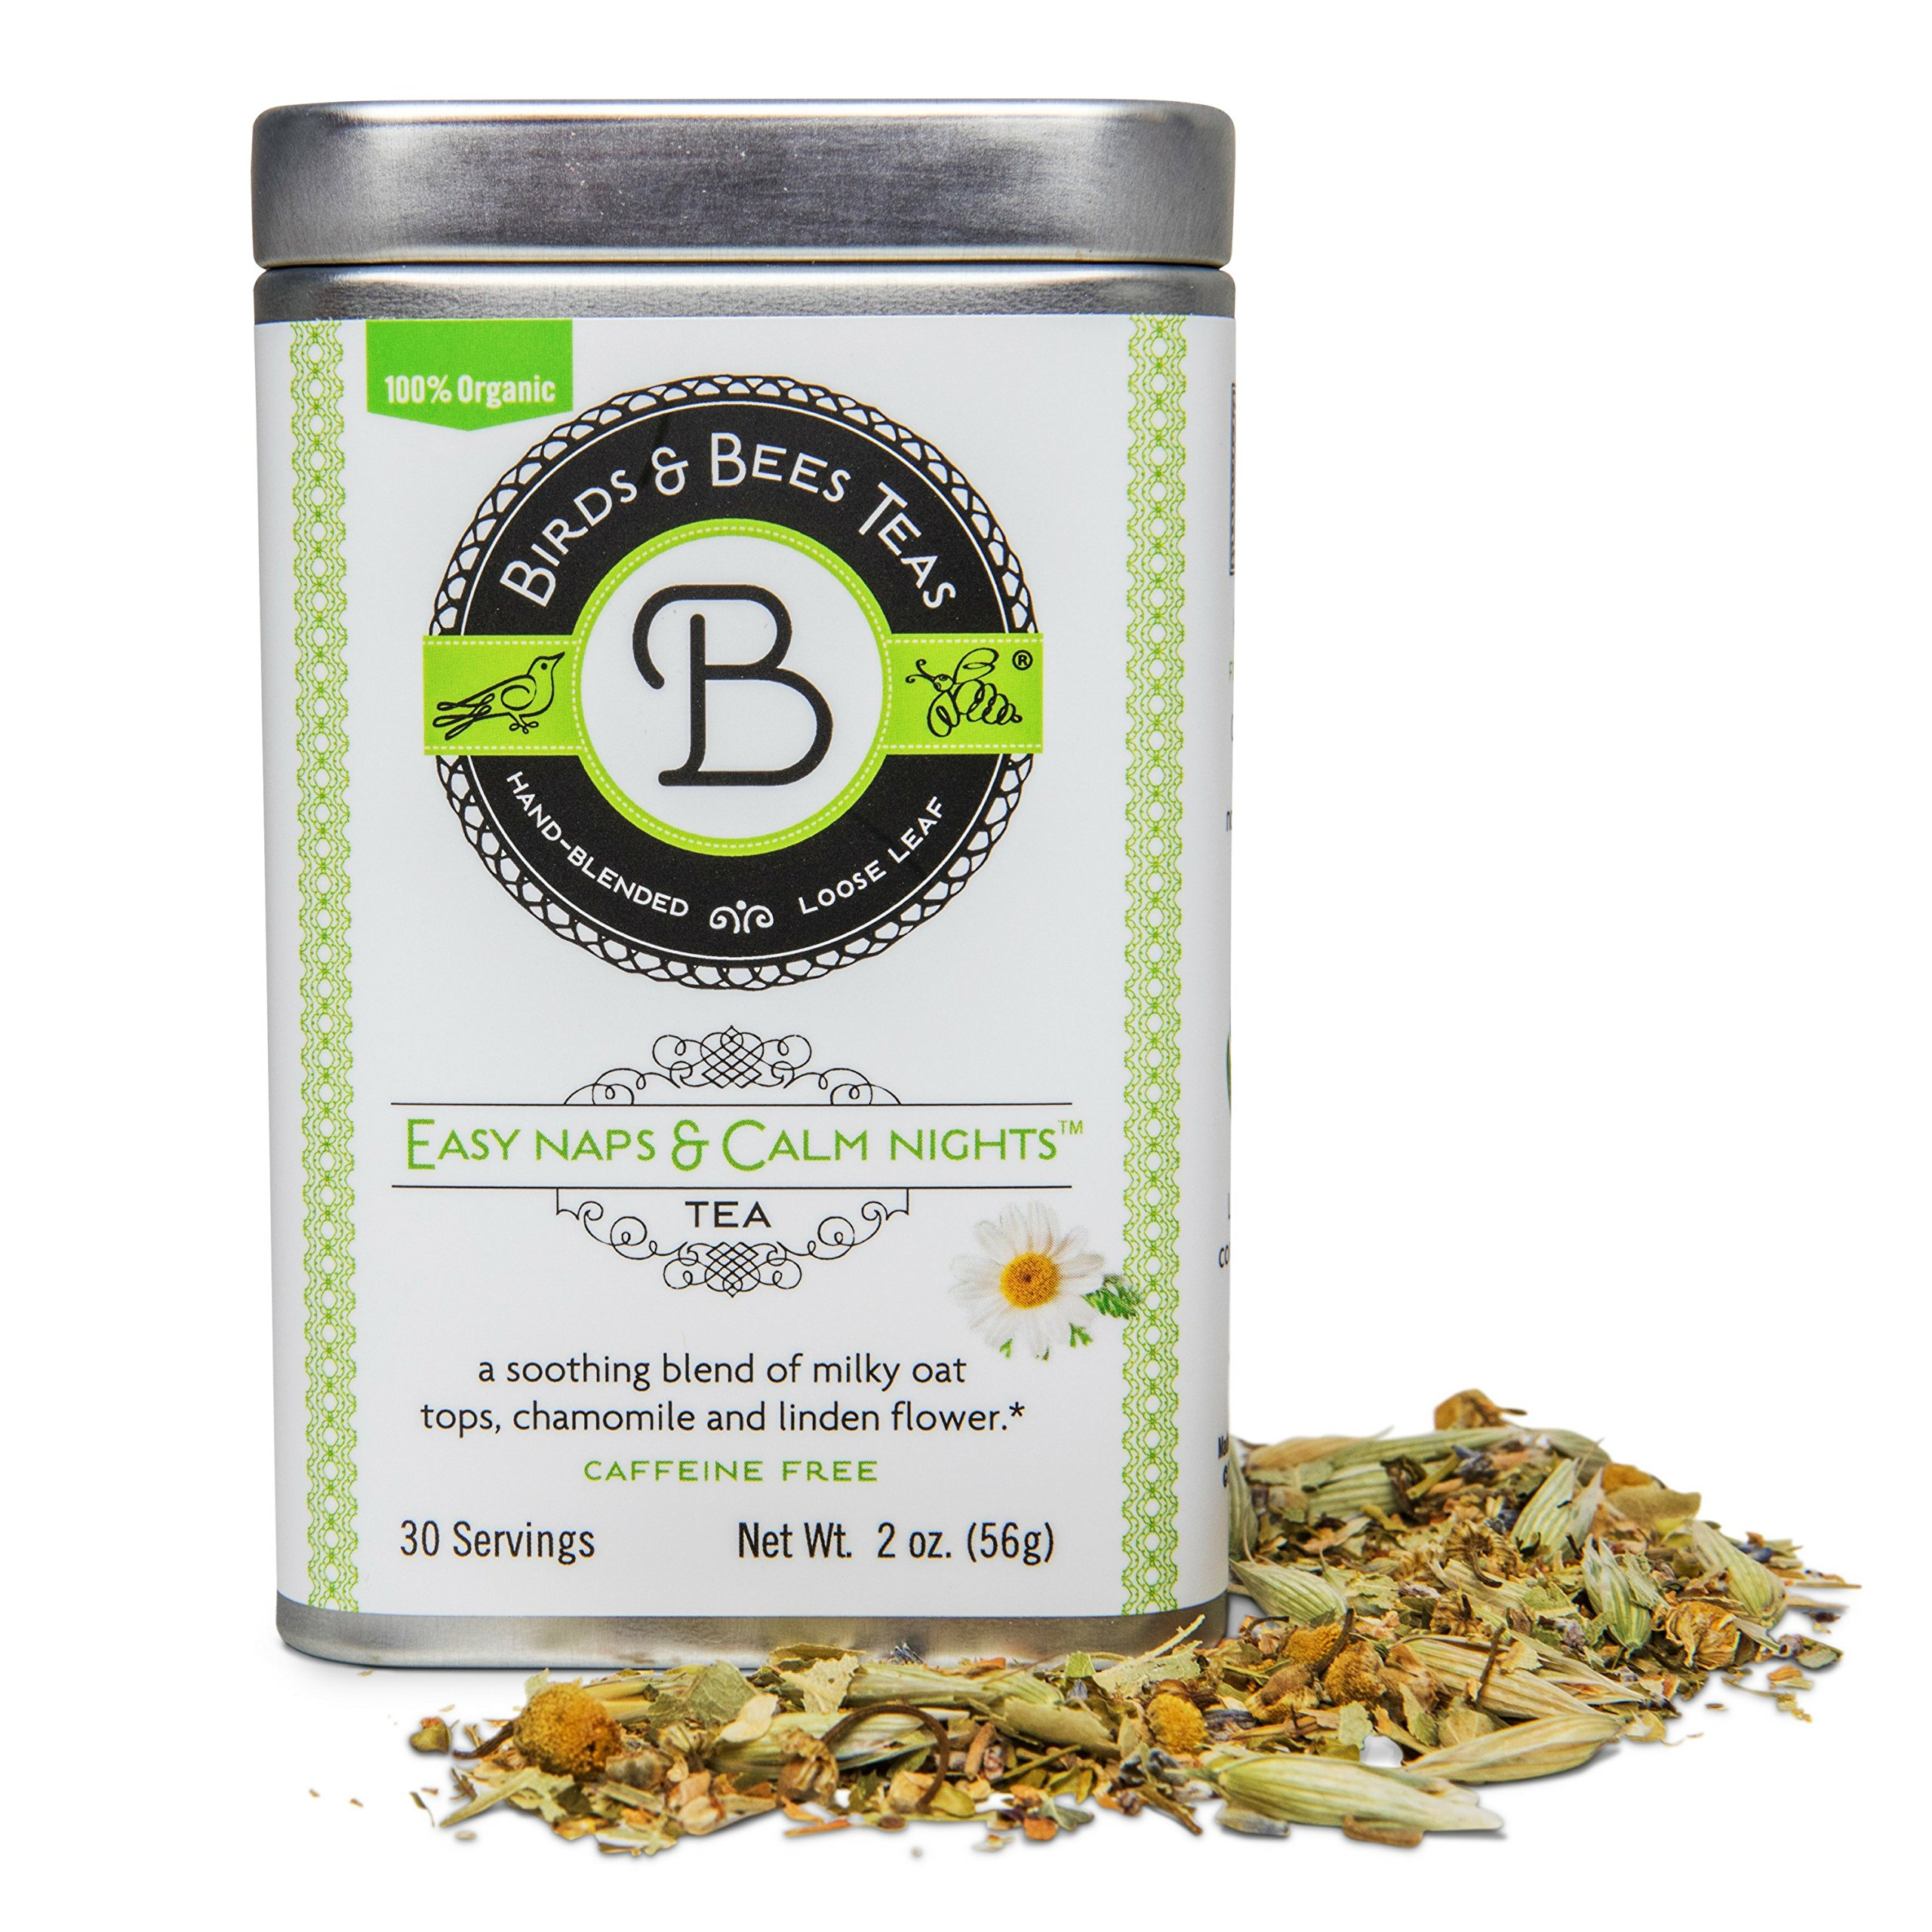 Natural Sleep Aid - Your Pregnancy Insomnia Solution! Easy Naps & Calm Nights - Birds & Bees Teas - Our Organic Sleep Tea has 30 Servings - Herbal Sleep Aid for Pregnant & Breastfeeding Moms, and Kids